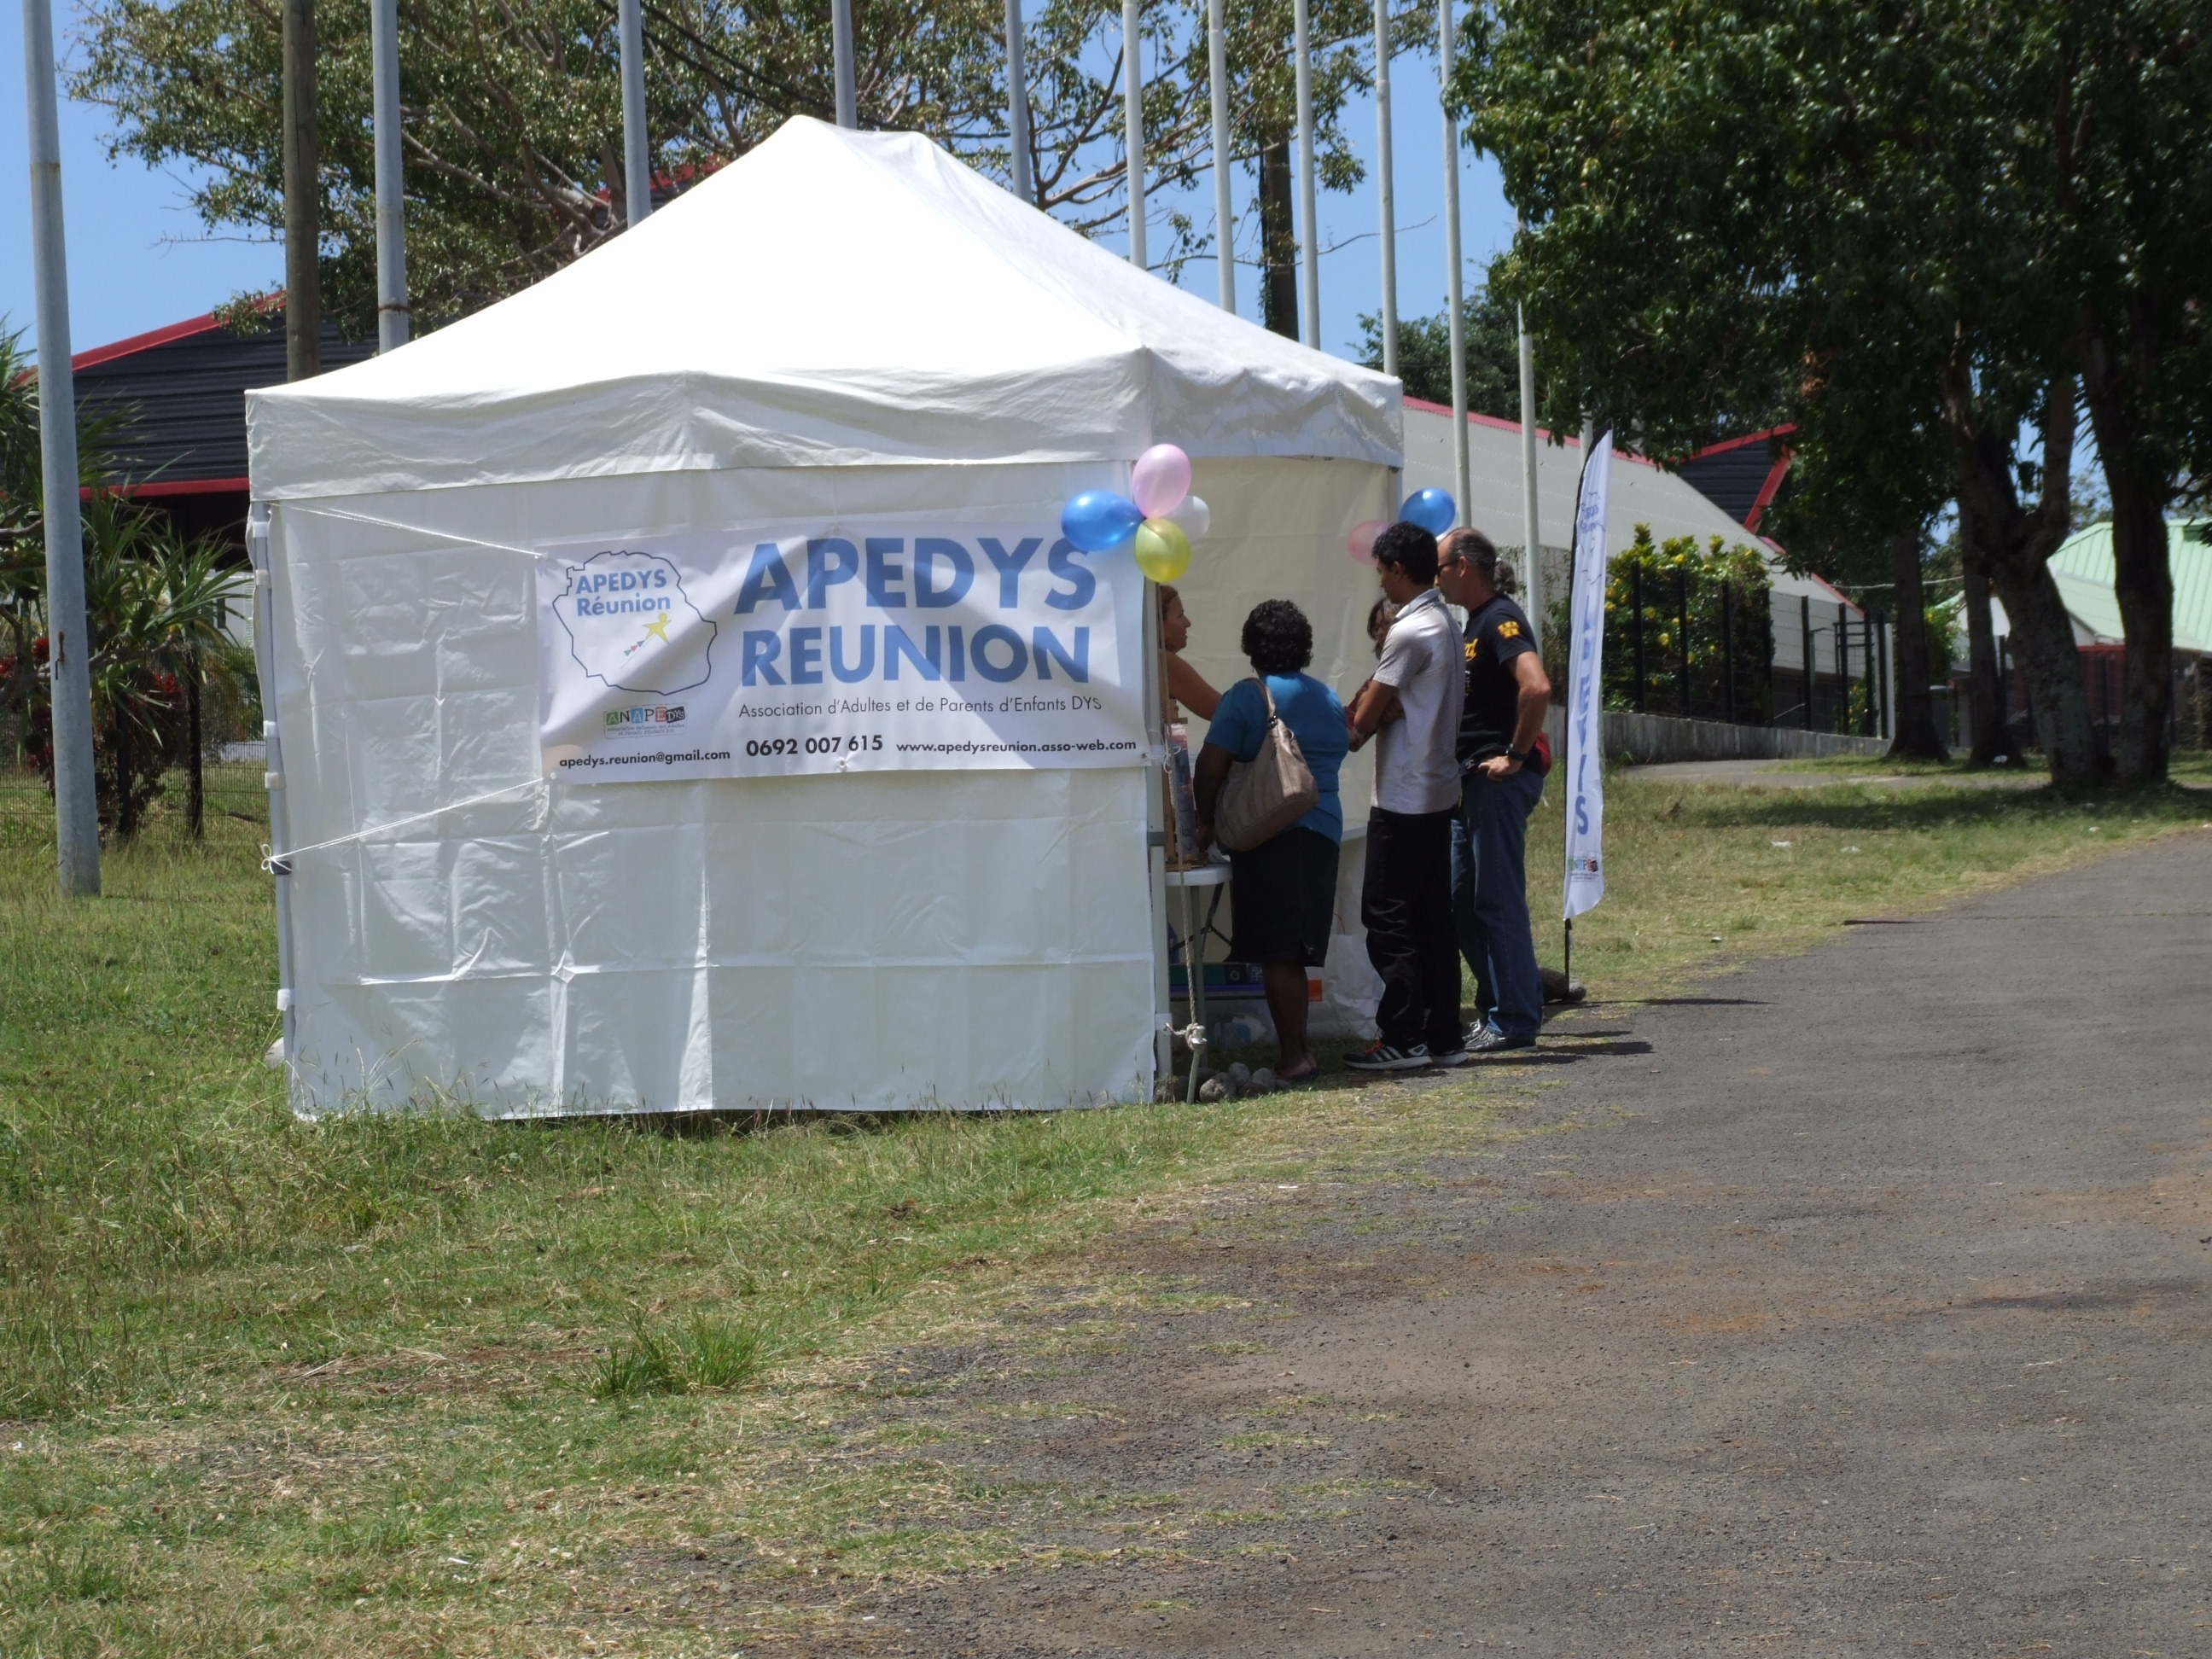 Photo Journee Nationale des Dys 2015 - 3 - Stand Apedys.JPG